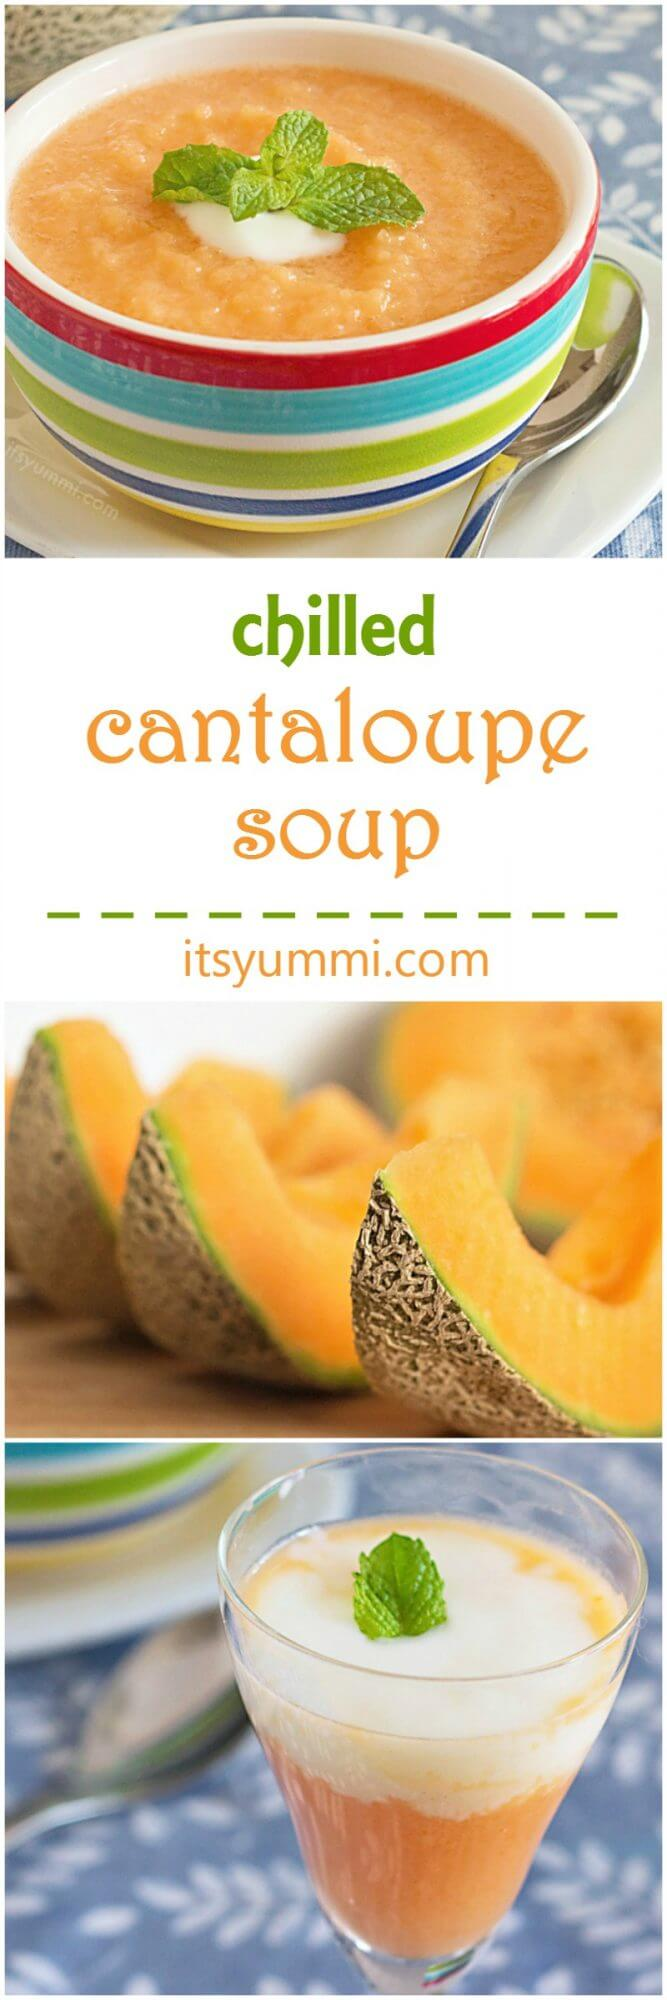 chilled cantaloupe soup photo collage